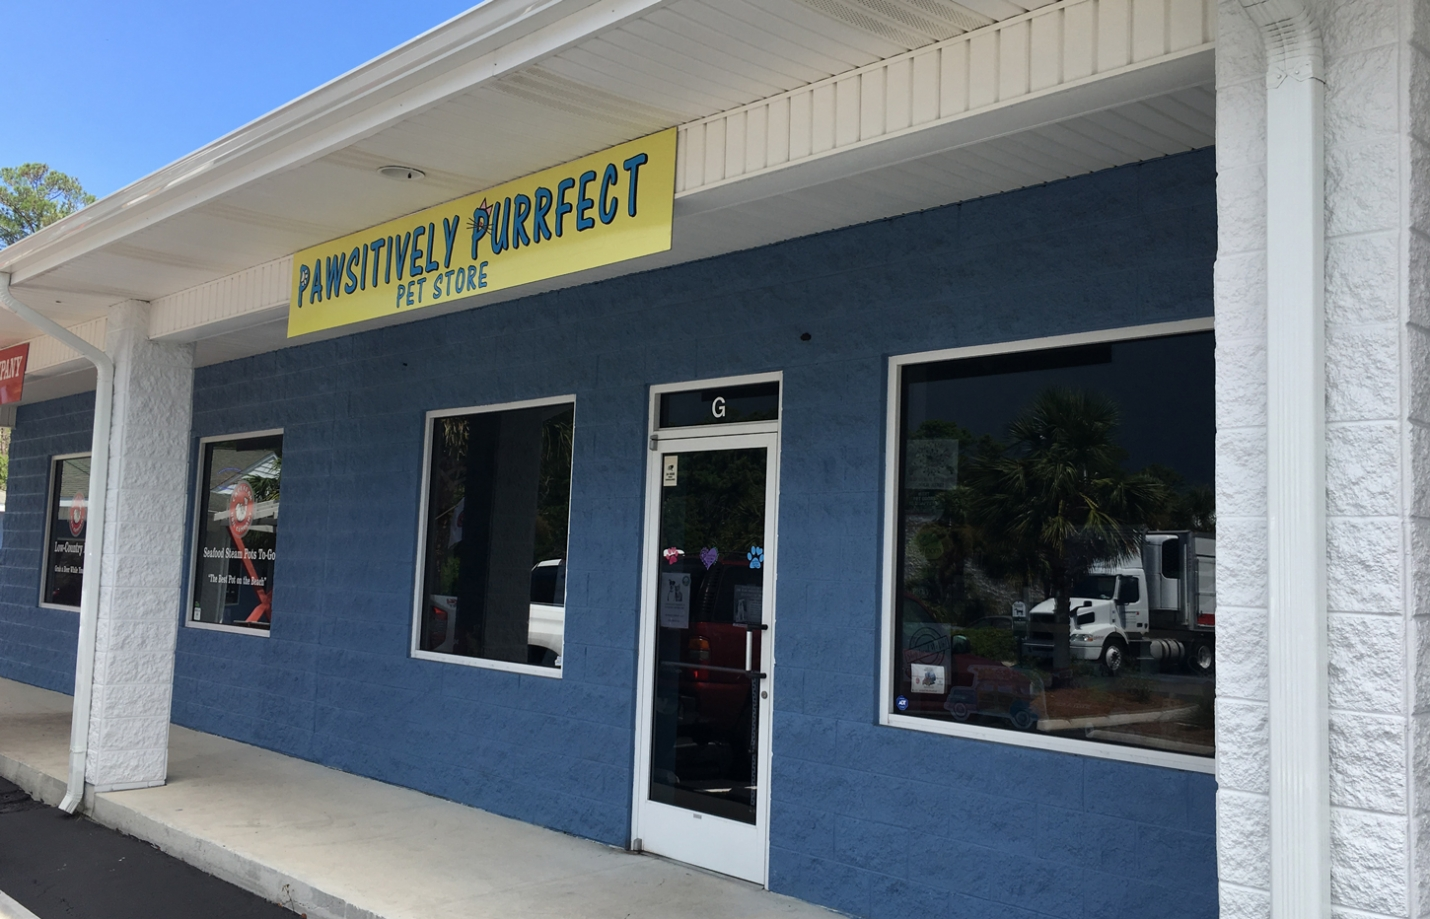 Pawsitively Purrfect Pet Store is located at 1140 North Lake Park Boulevard in Carolina Beach and can be reached by calling (910) 707-1500.